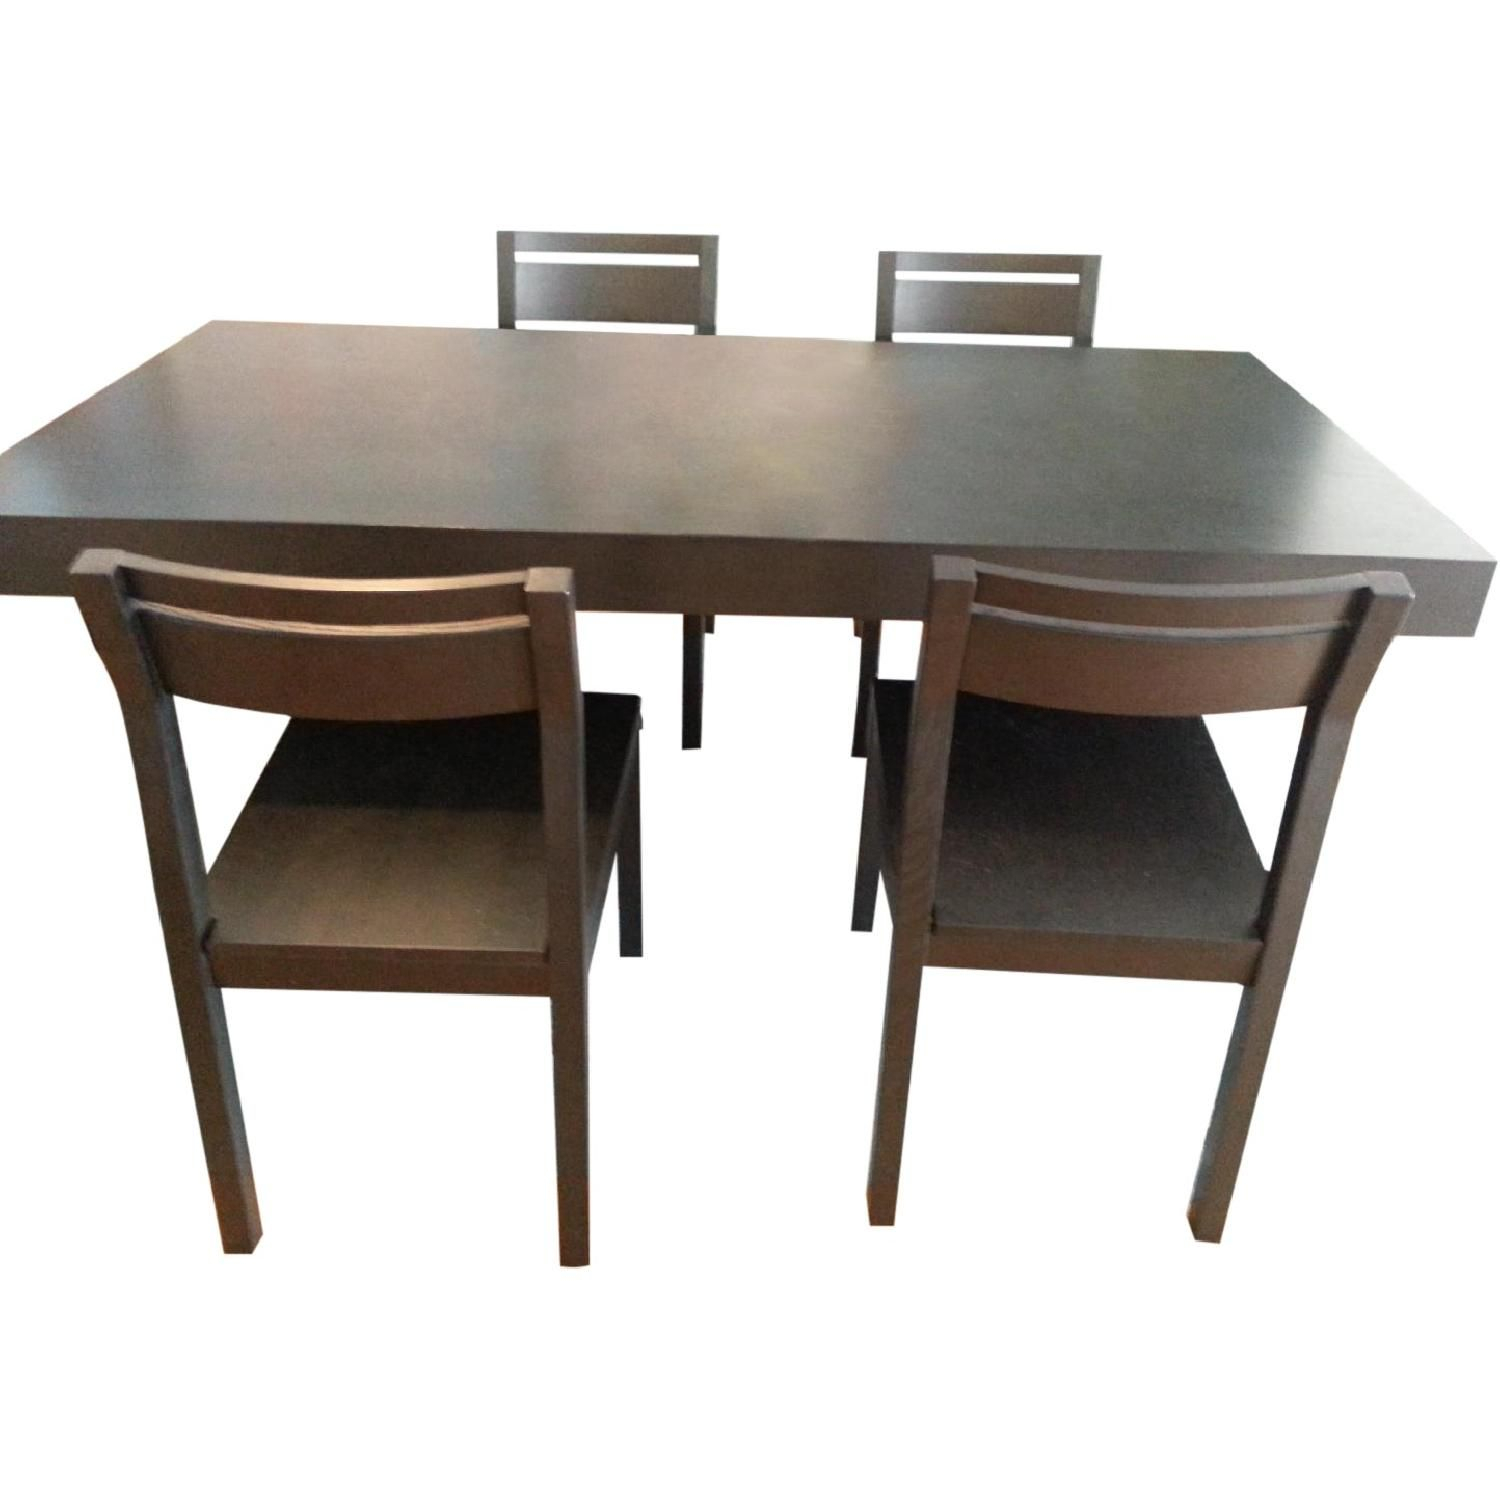 West Elm Terra Dining Table W/ 4 Chairs | Dining Table For Recent West Dining Tables (Image 23 of 25)